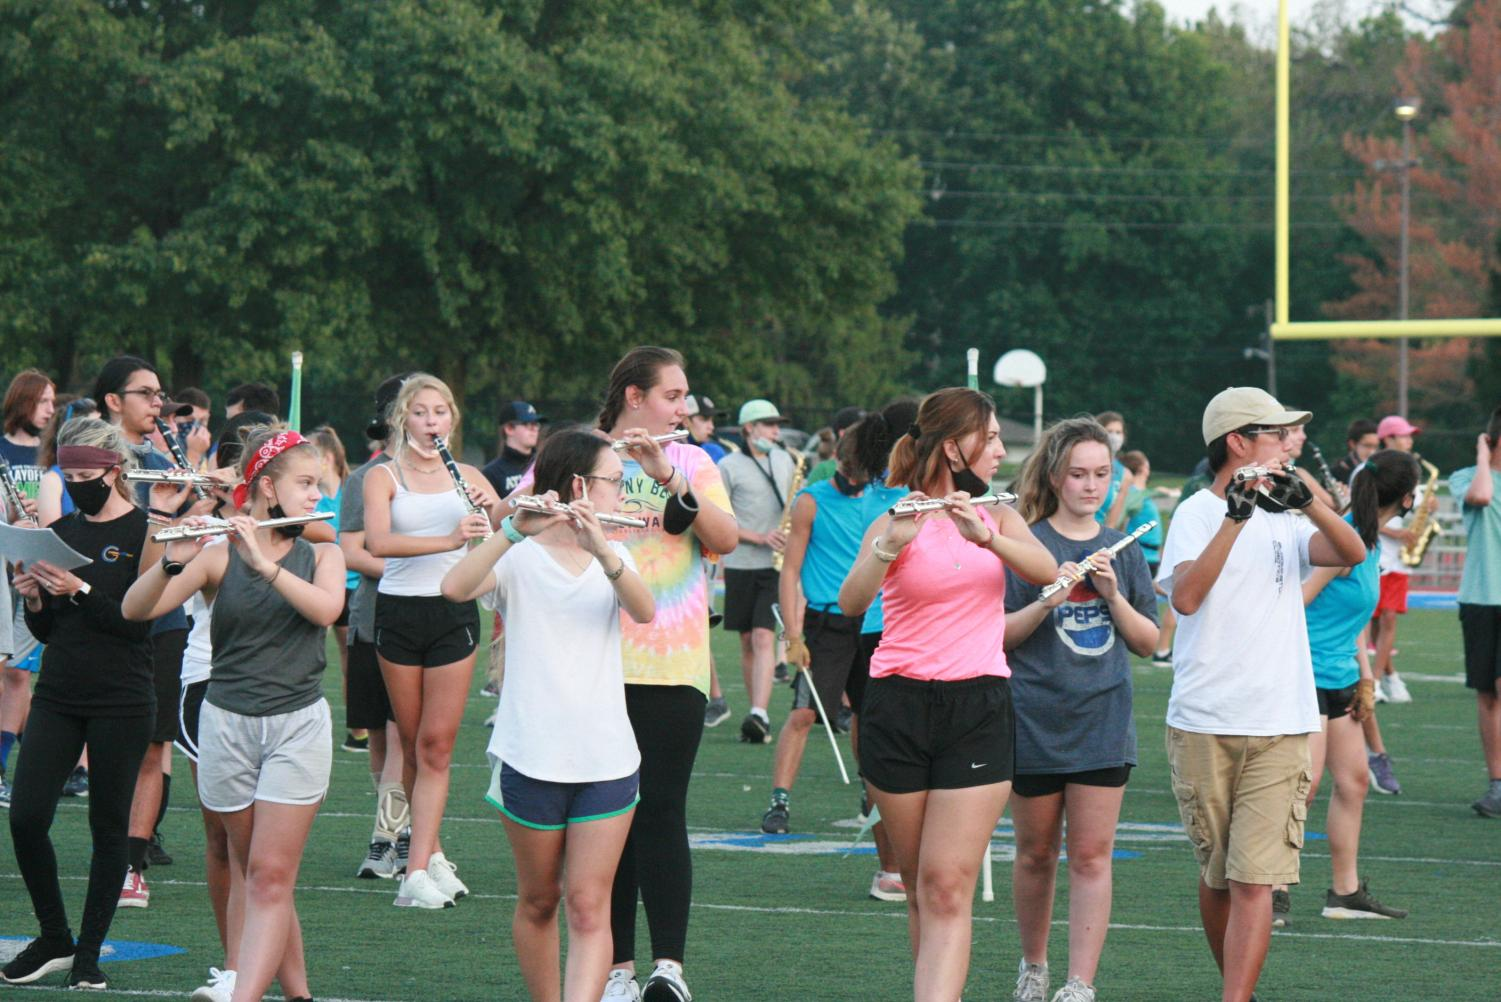 The flute section moves in formation together during rehearsal. They practice their music and the moves at the same time, putting it together with the rest of the band. Social distancing is enforced as much as possible.